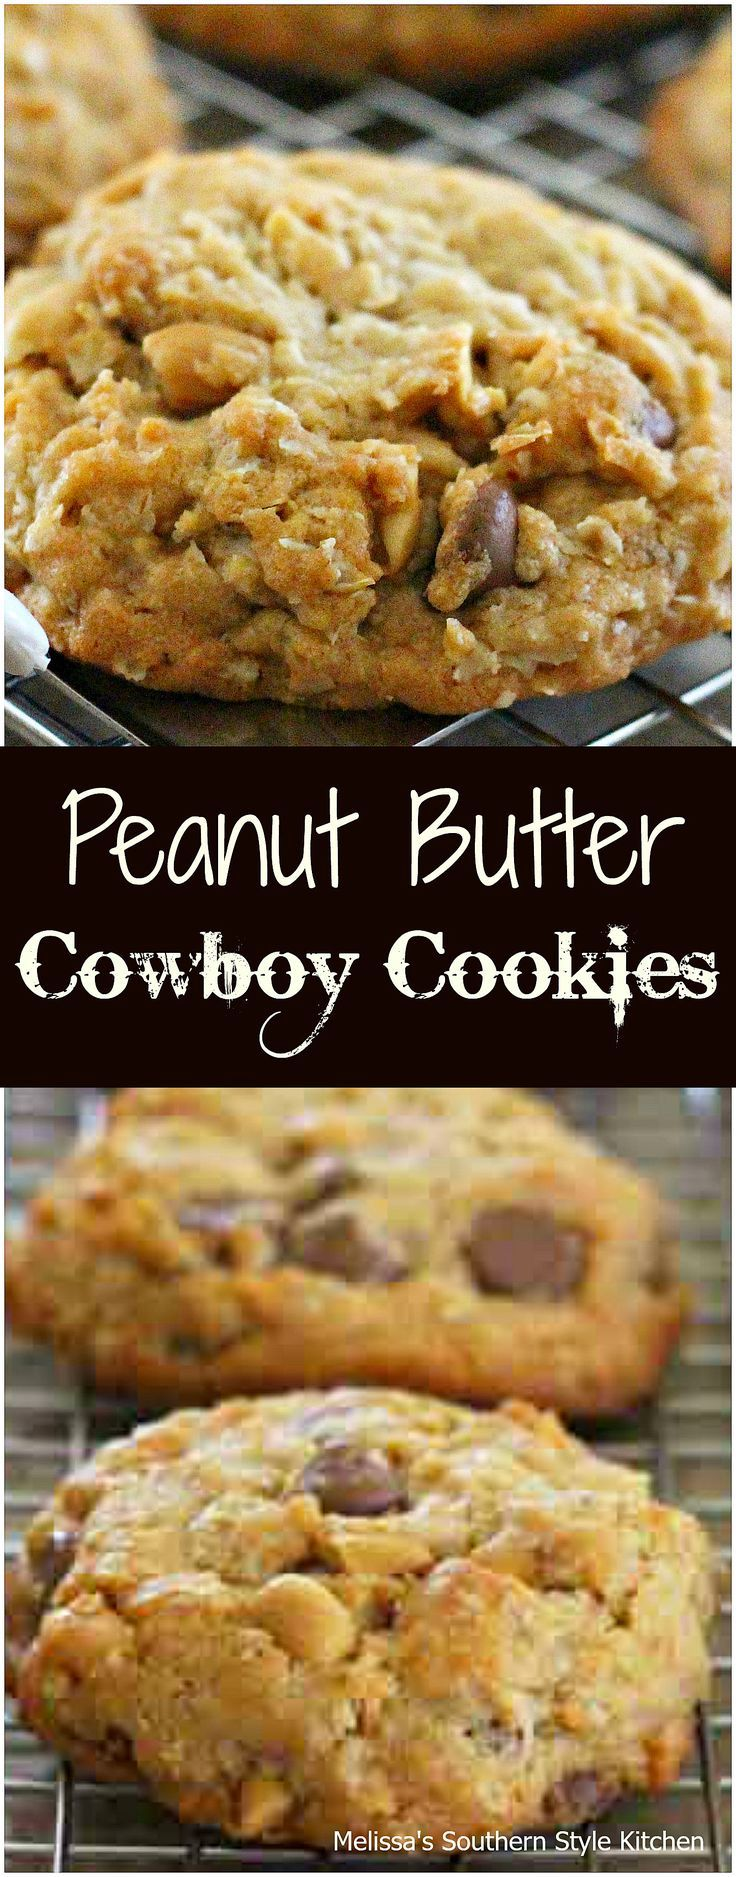 Peanut Butter Cowboy Cookies - I've never outgrown the thrill of warm gooey chocolate filled cookies and a glass of cold milk. I fully intend to keep it that wa